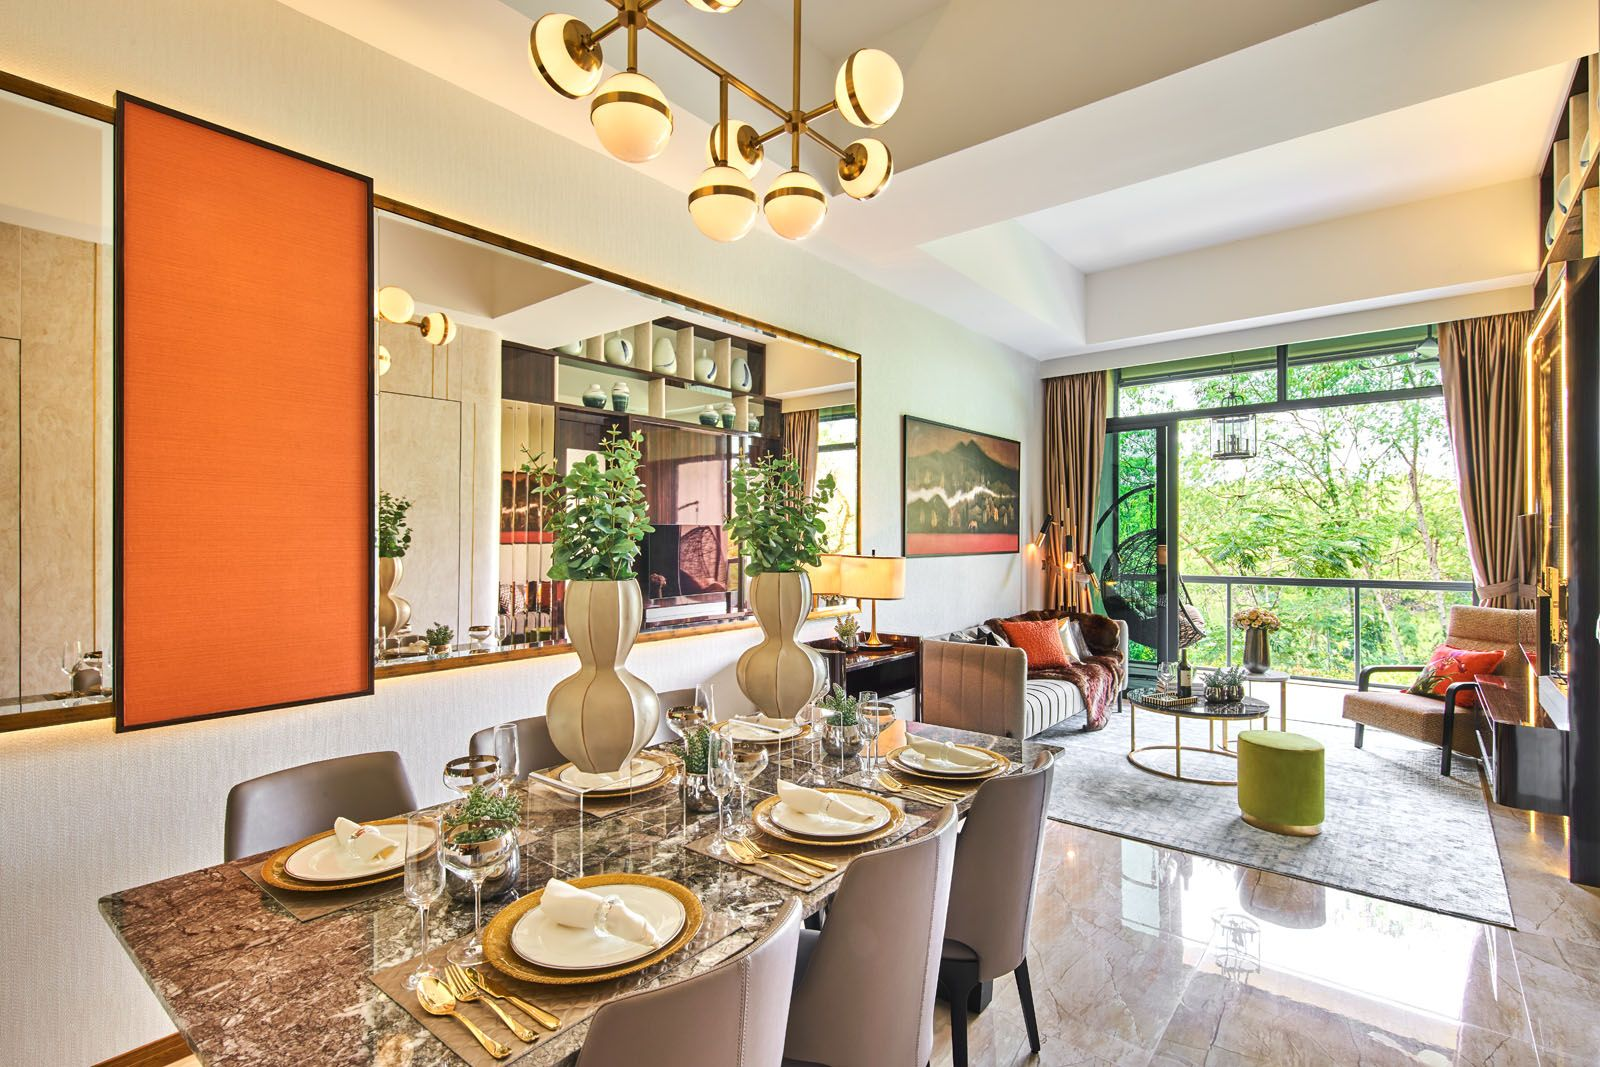 Orange wall panels and accent cushions liven up the living and dining area of this home